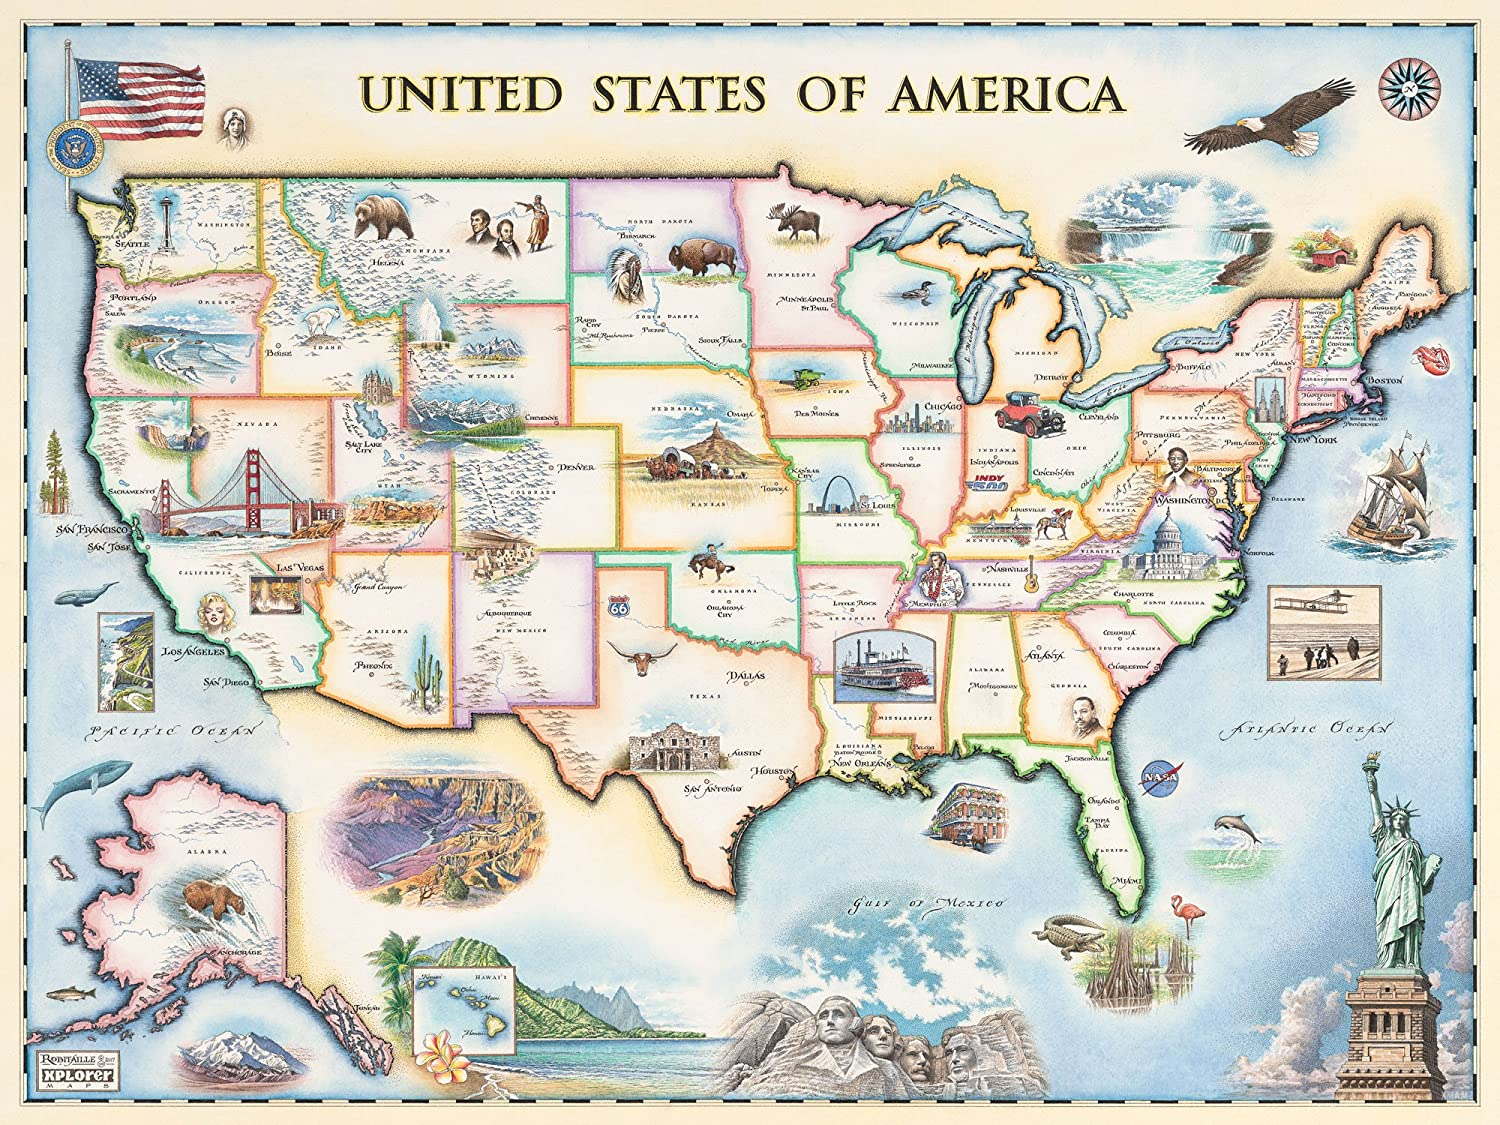 USA Map Wall Art Poster - Authentic Hand Drawn Maps in Old World, Antique  Style - Art Deco Lithographic Print